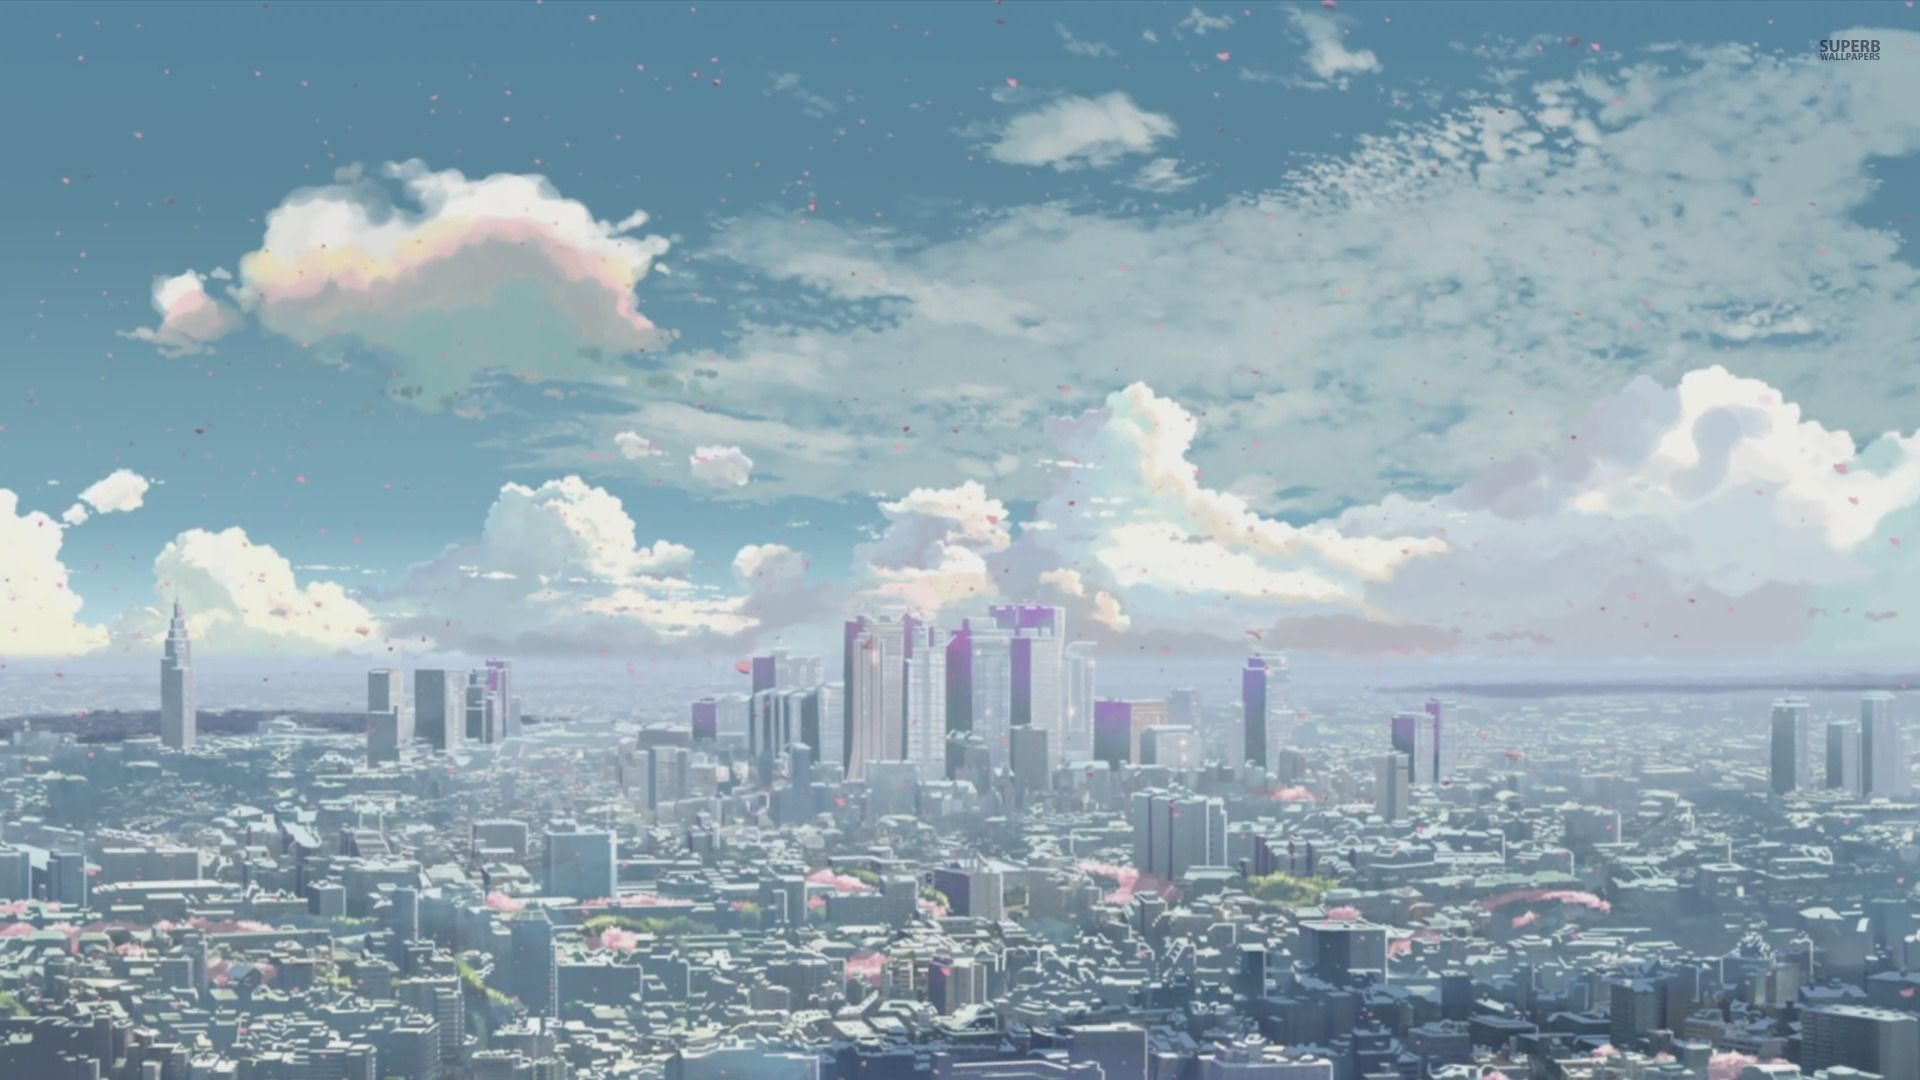 5 Centimeters Per Second Pics By Origen Howkins On Freshwall